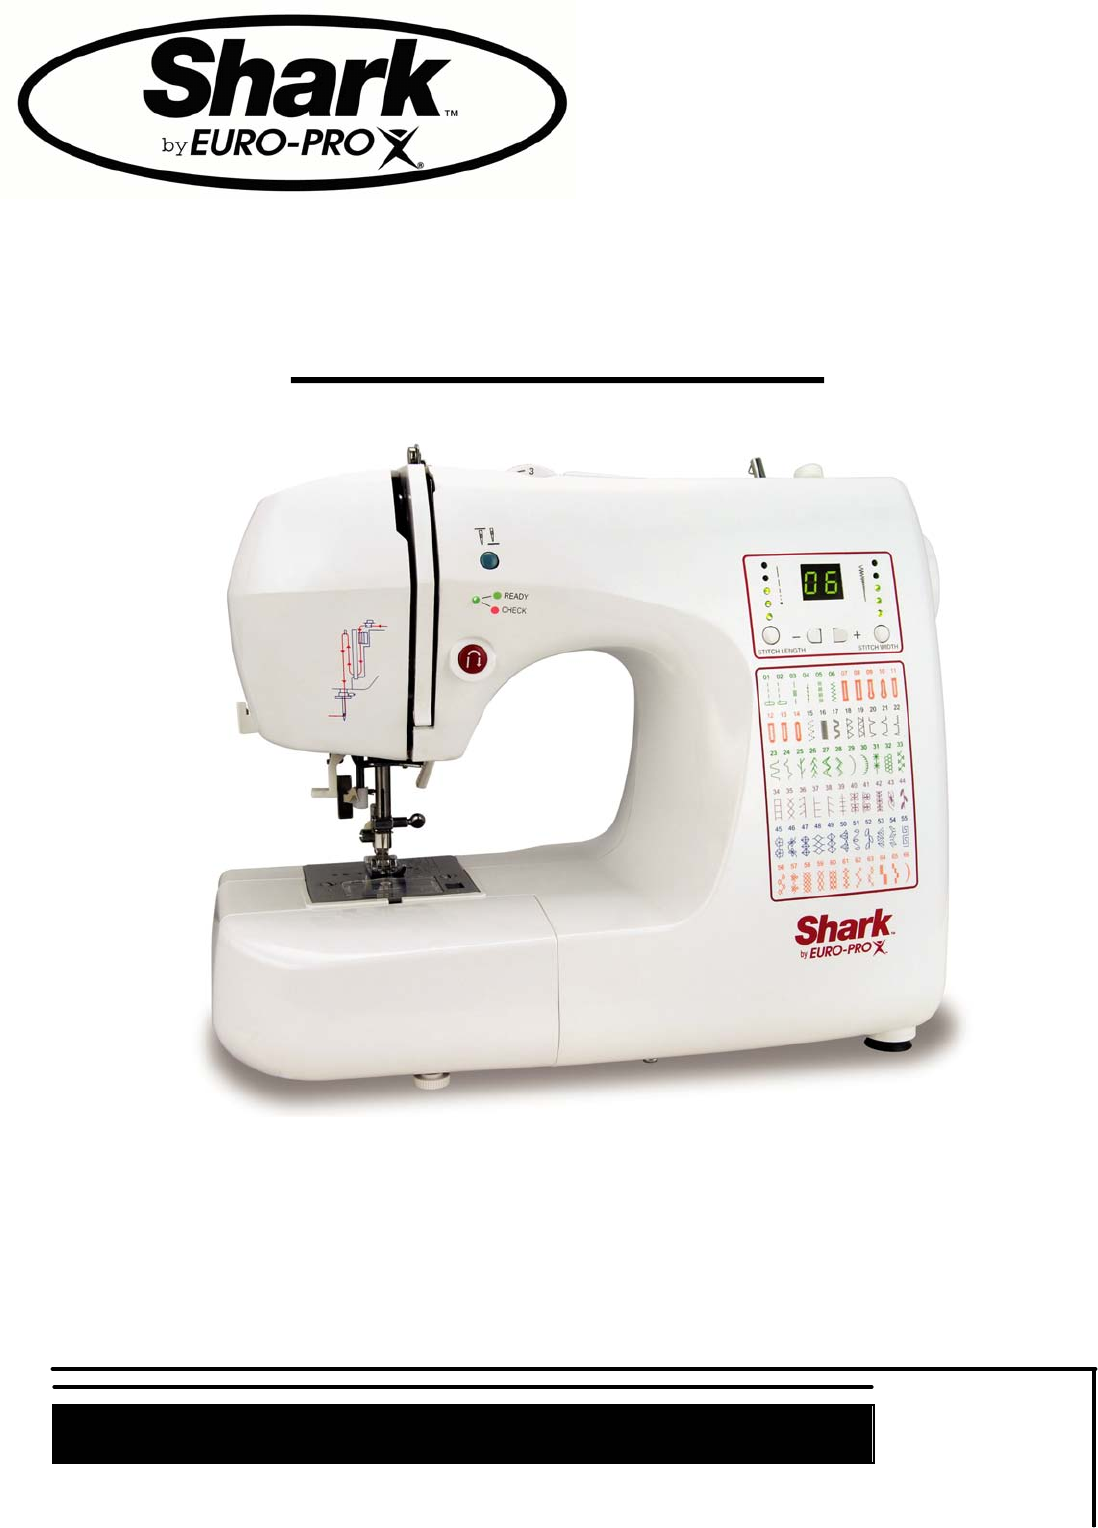 shark sewing machine 9015 user guide manualsonline com rh homeappliance manualsonline com shark sewing machine manual 7133 shark sewing machine manual 998a